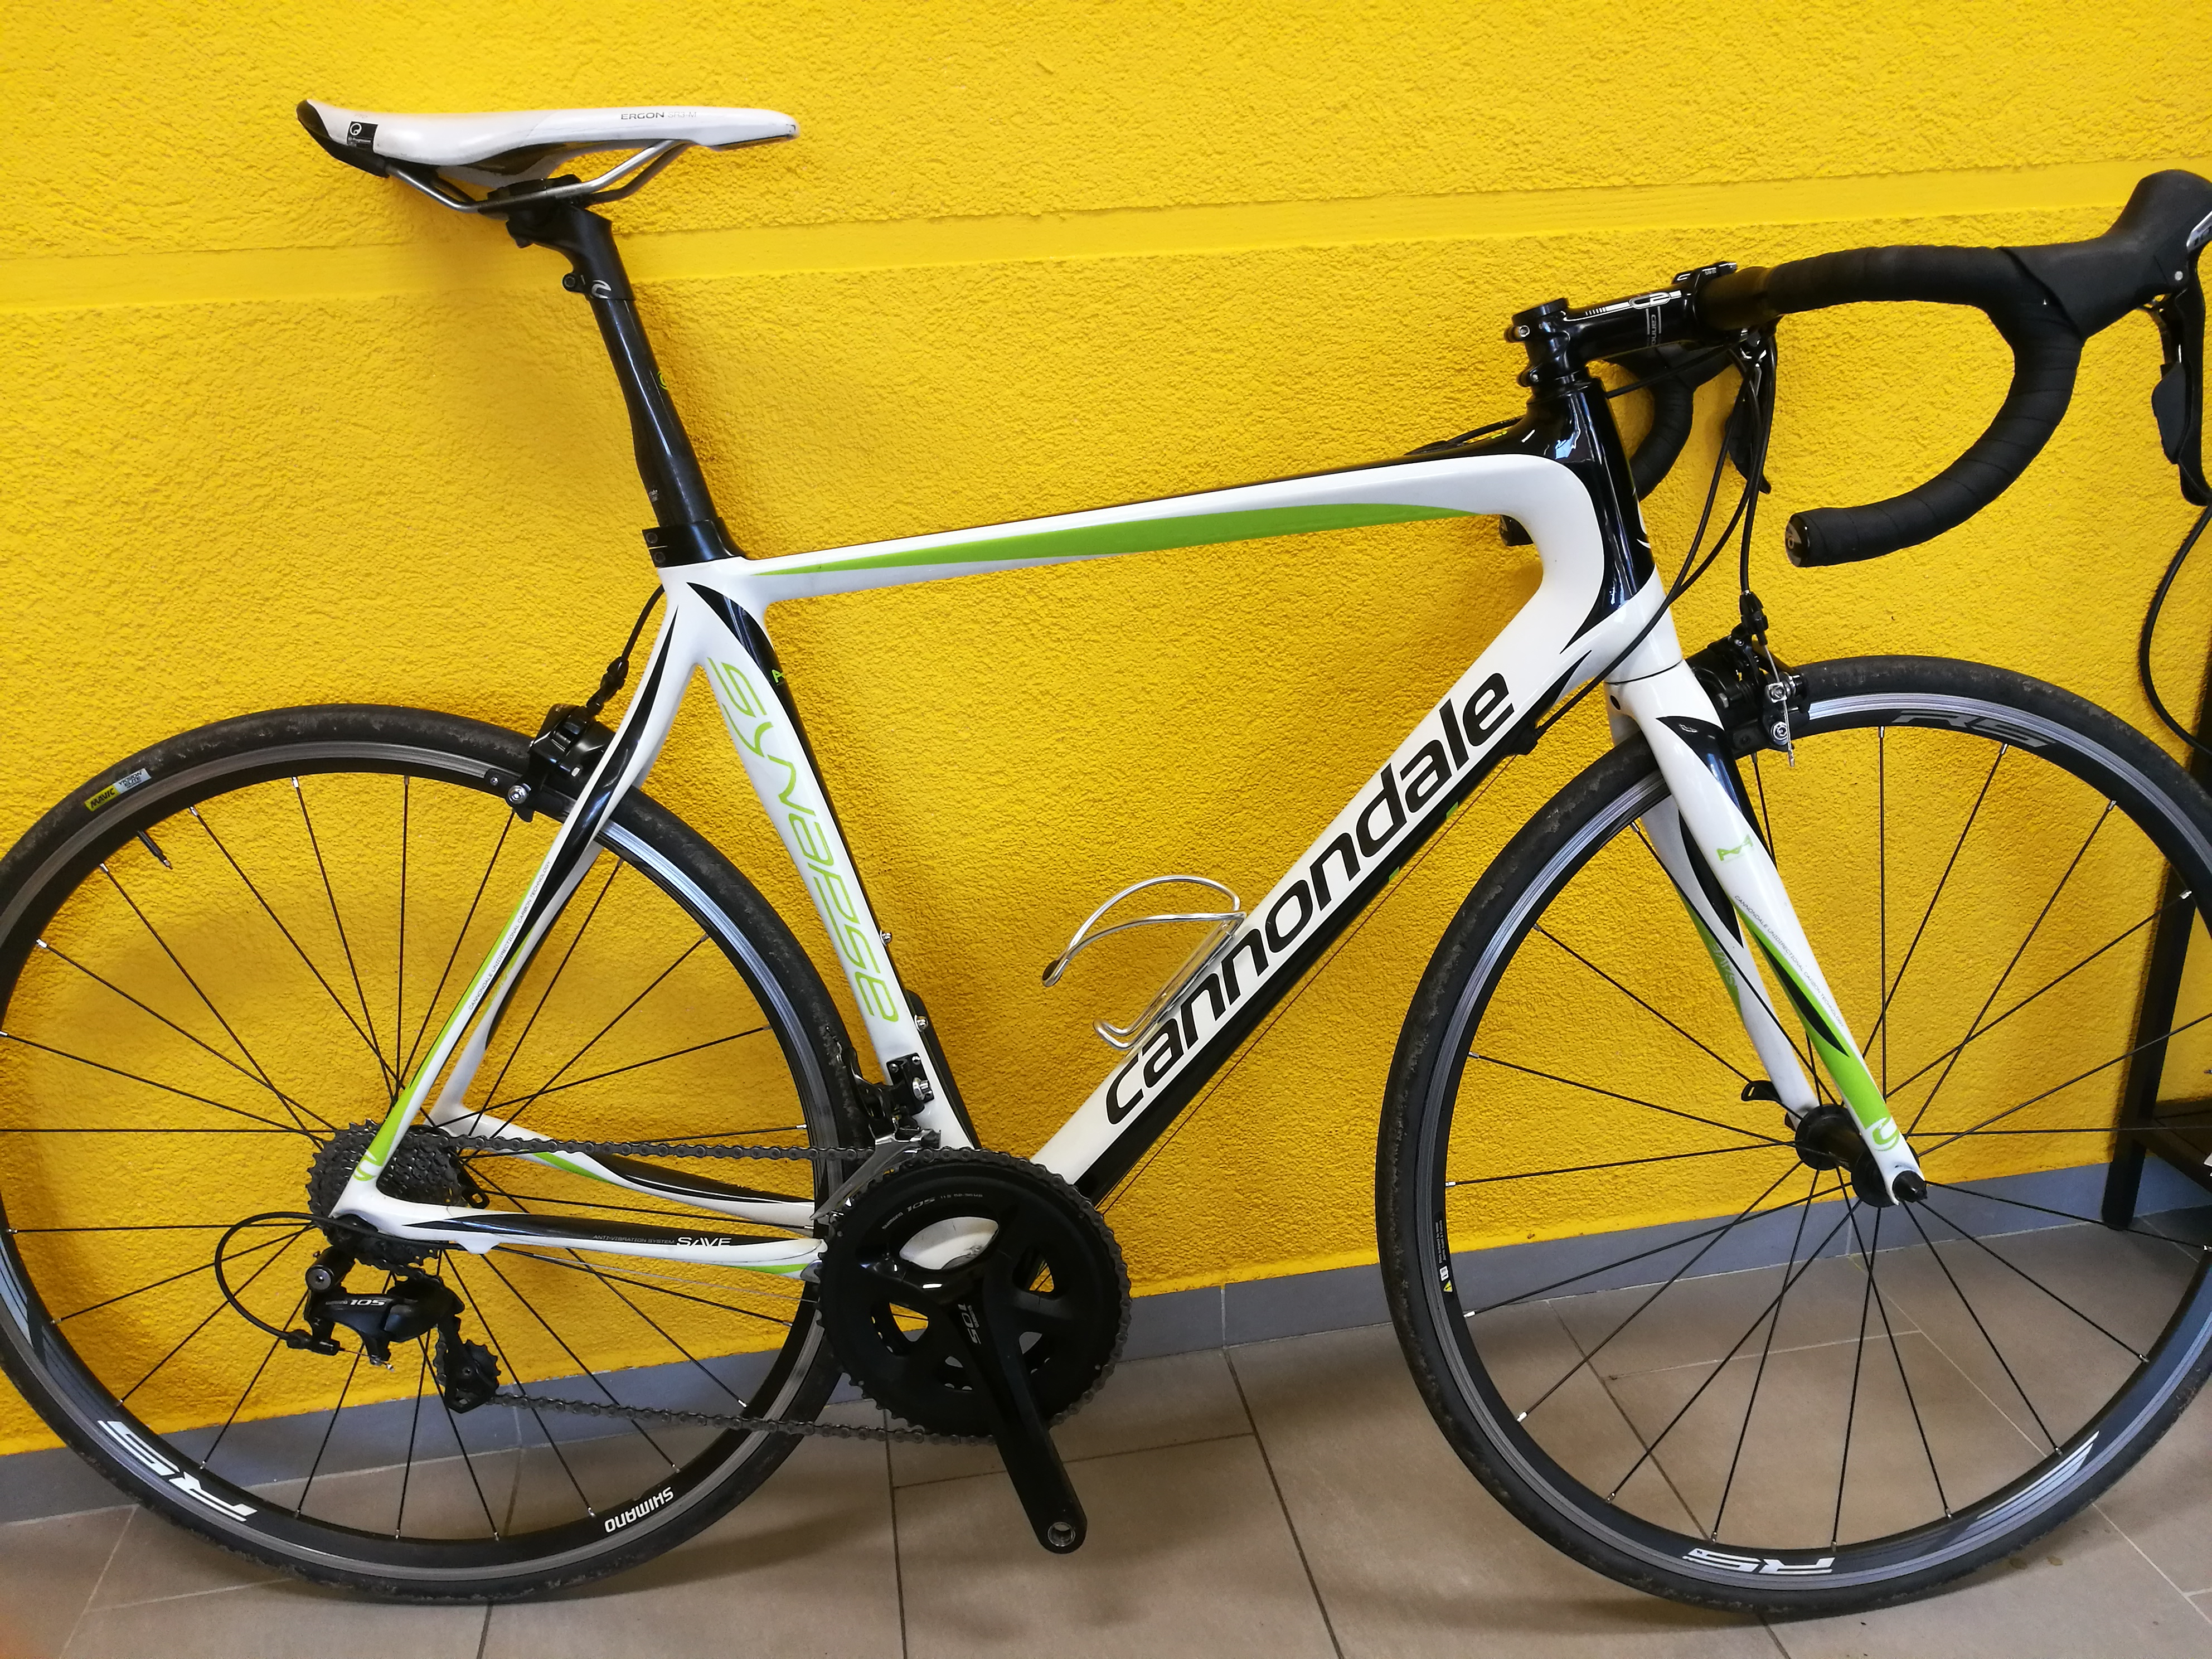 Cannondale synapse - 105, rėmo dydis 56